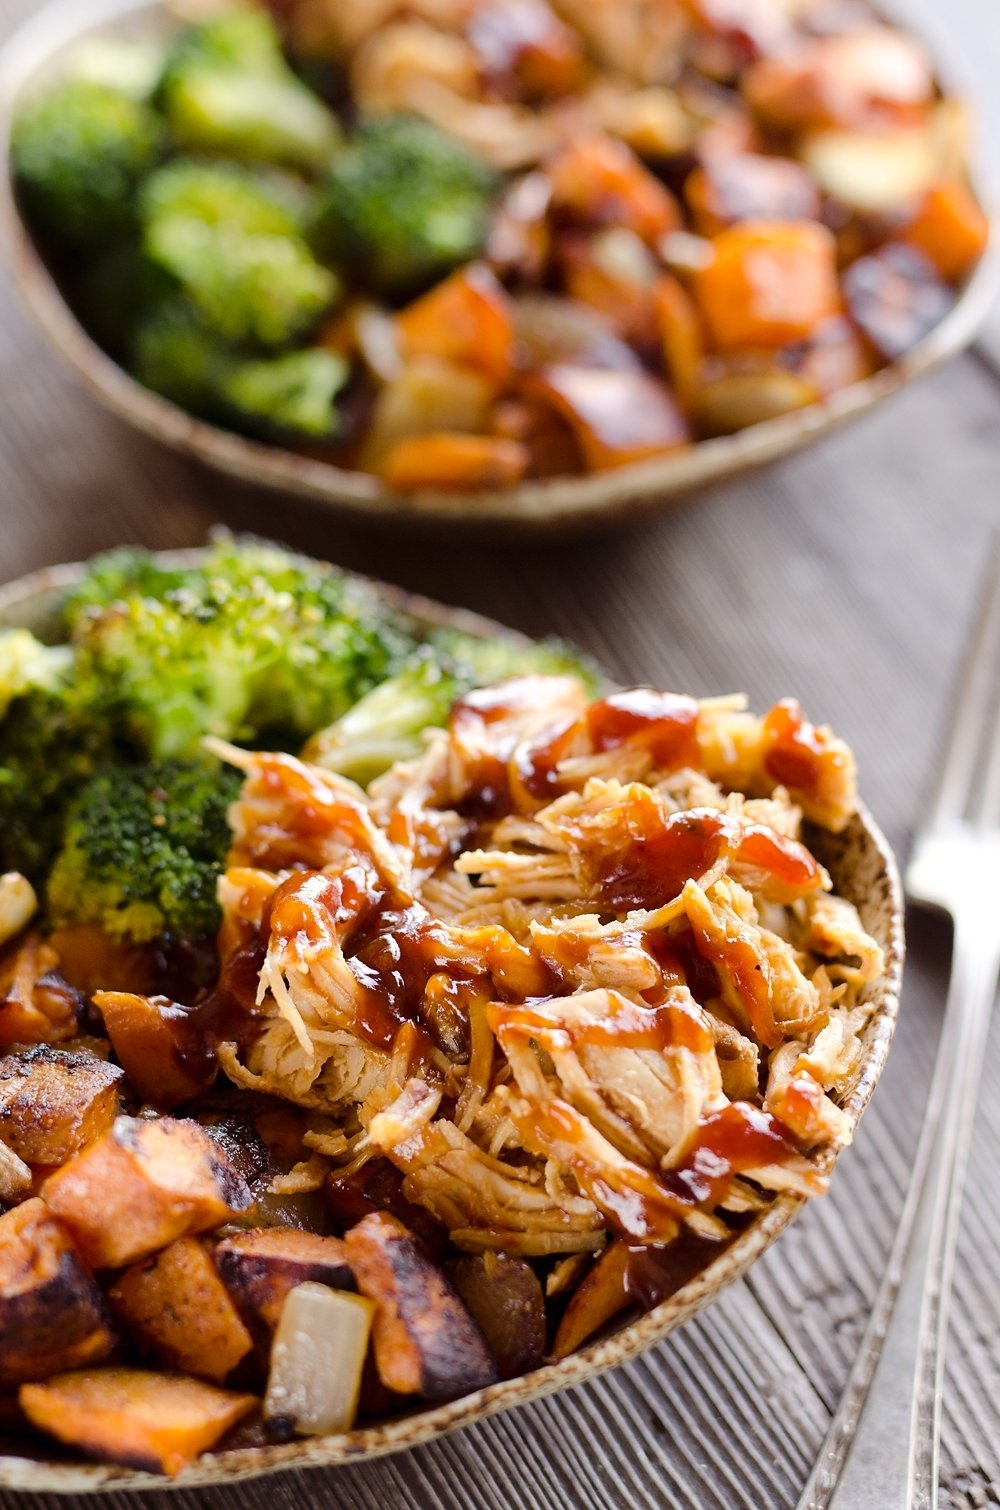 10 Attractive Healthy Dinner Ideas With Chicken bbq chicken roasted sweet potato bowls easy meal prep 1 2020